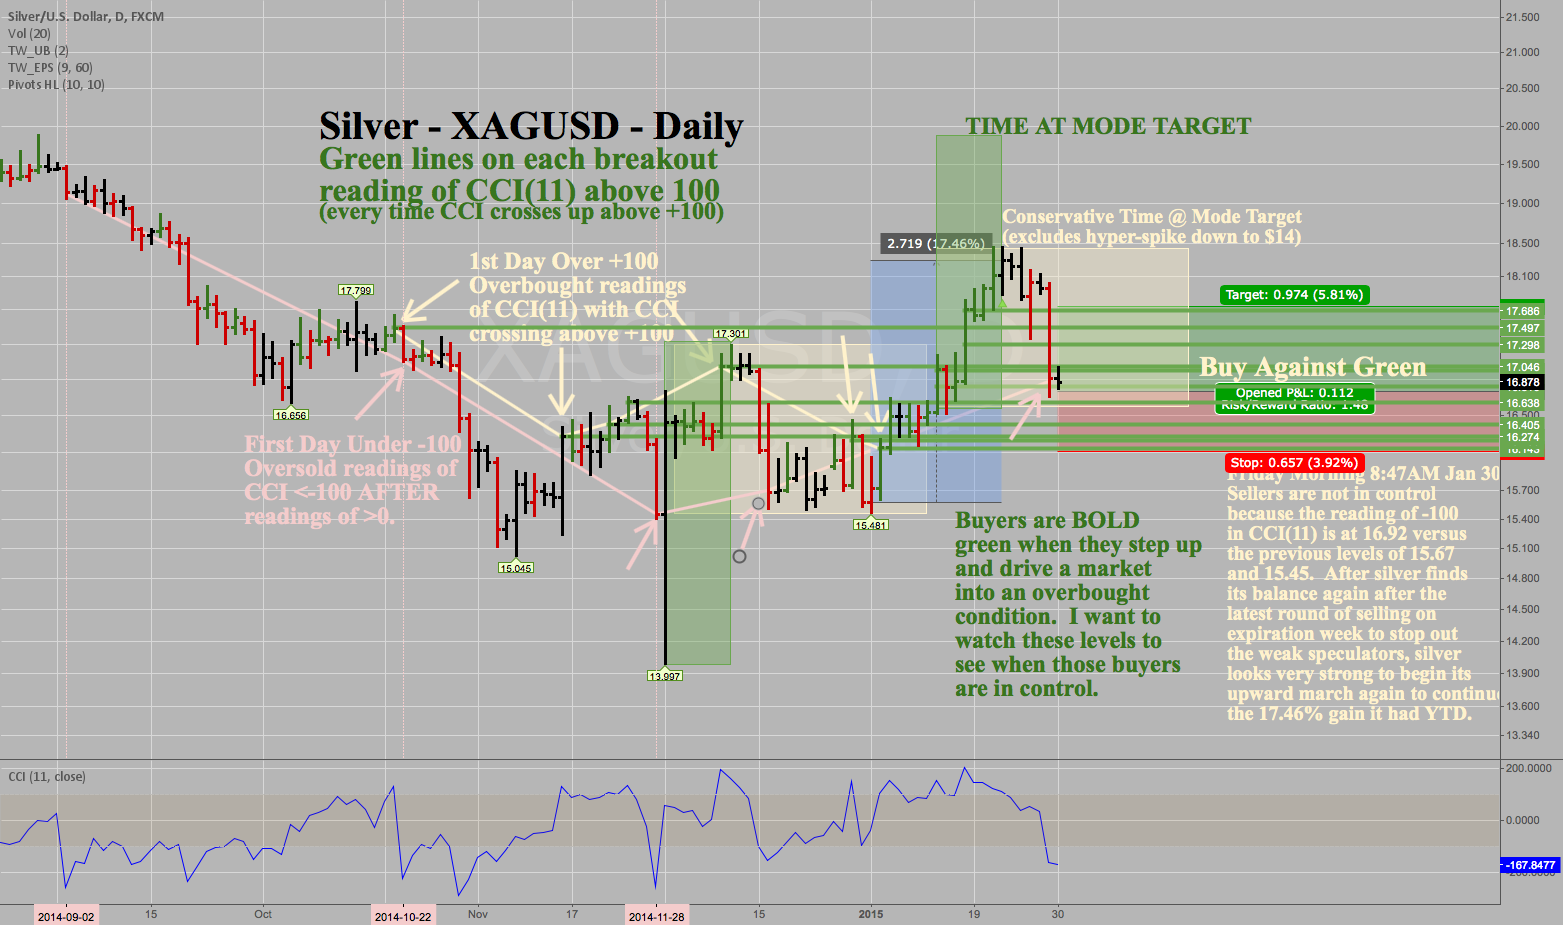 XAGUSD Silver - Daily - Update on the Uptrend